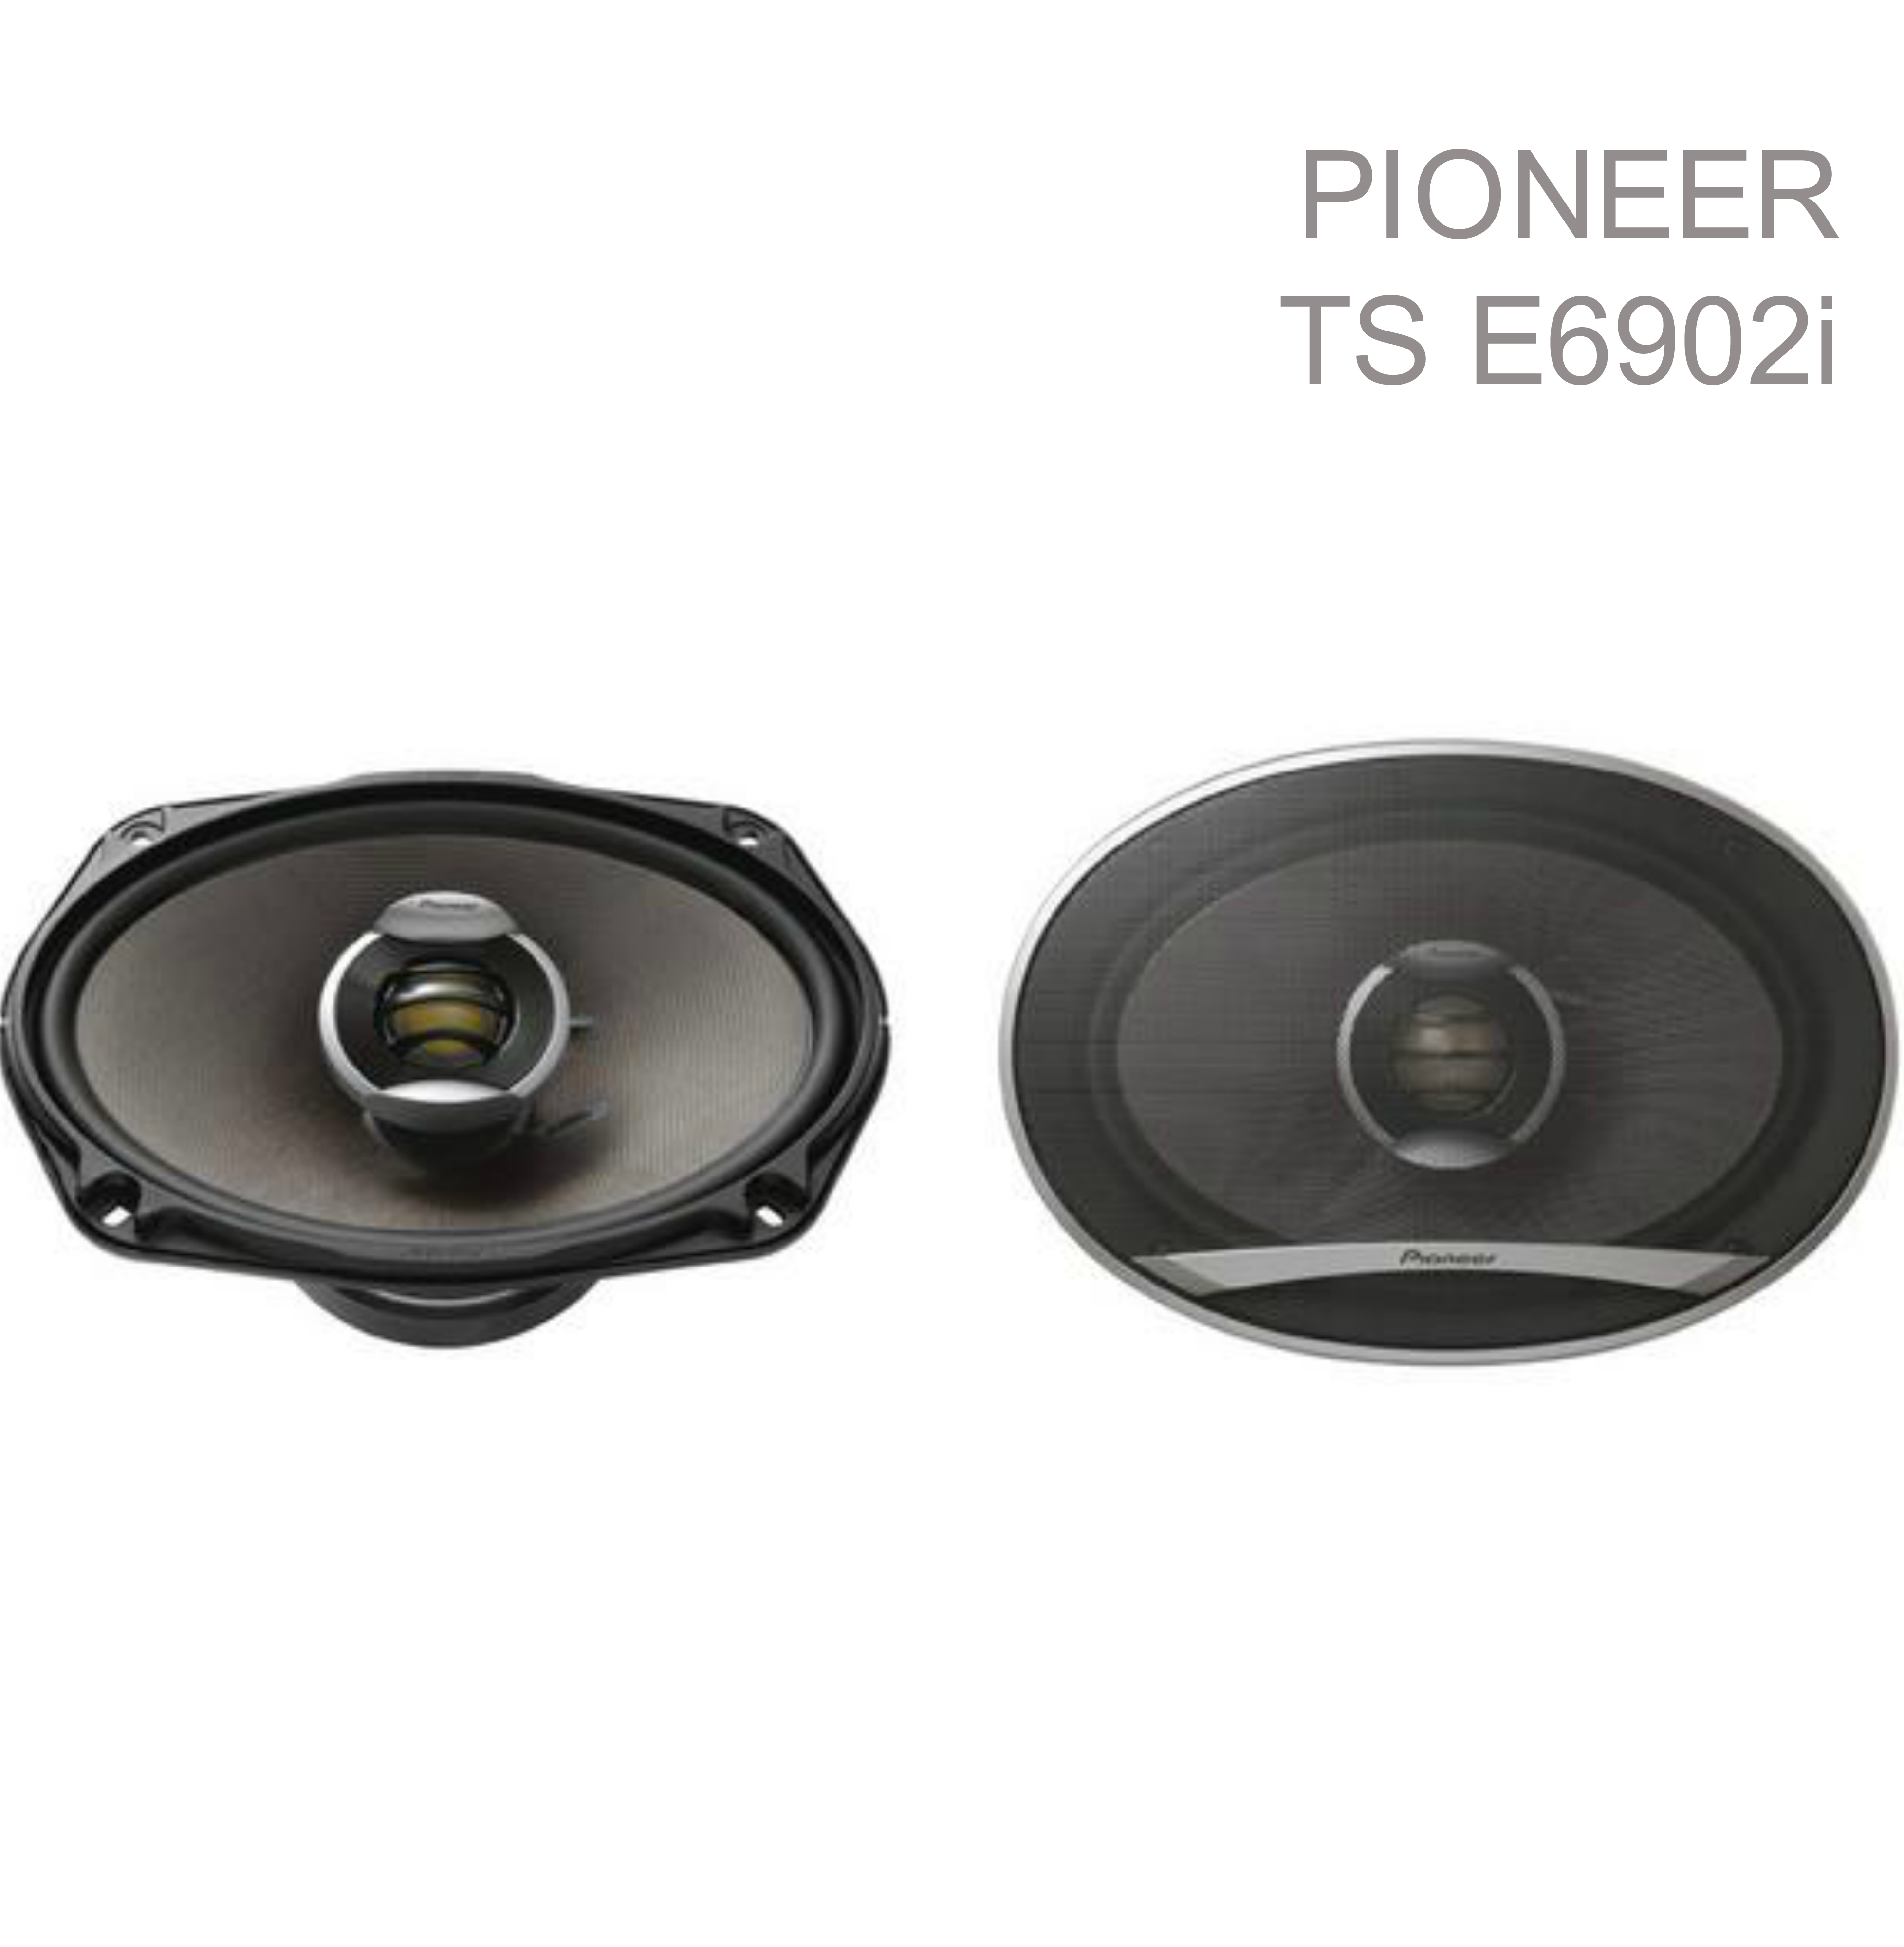 PIONEER TS E6902i 2 Way In Car Vehicle Audio Sound Speaker